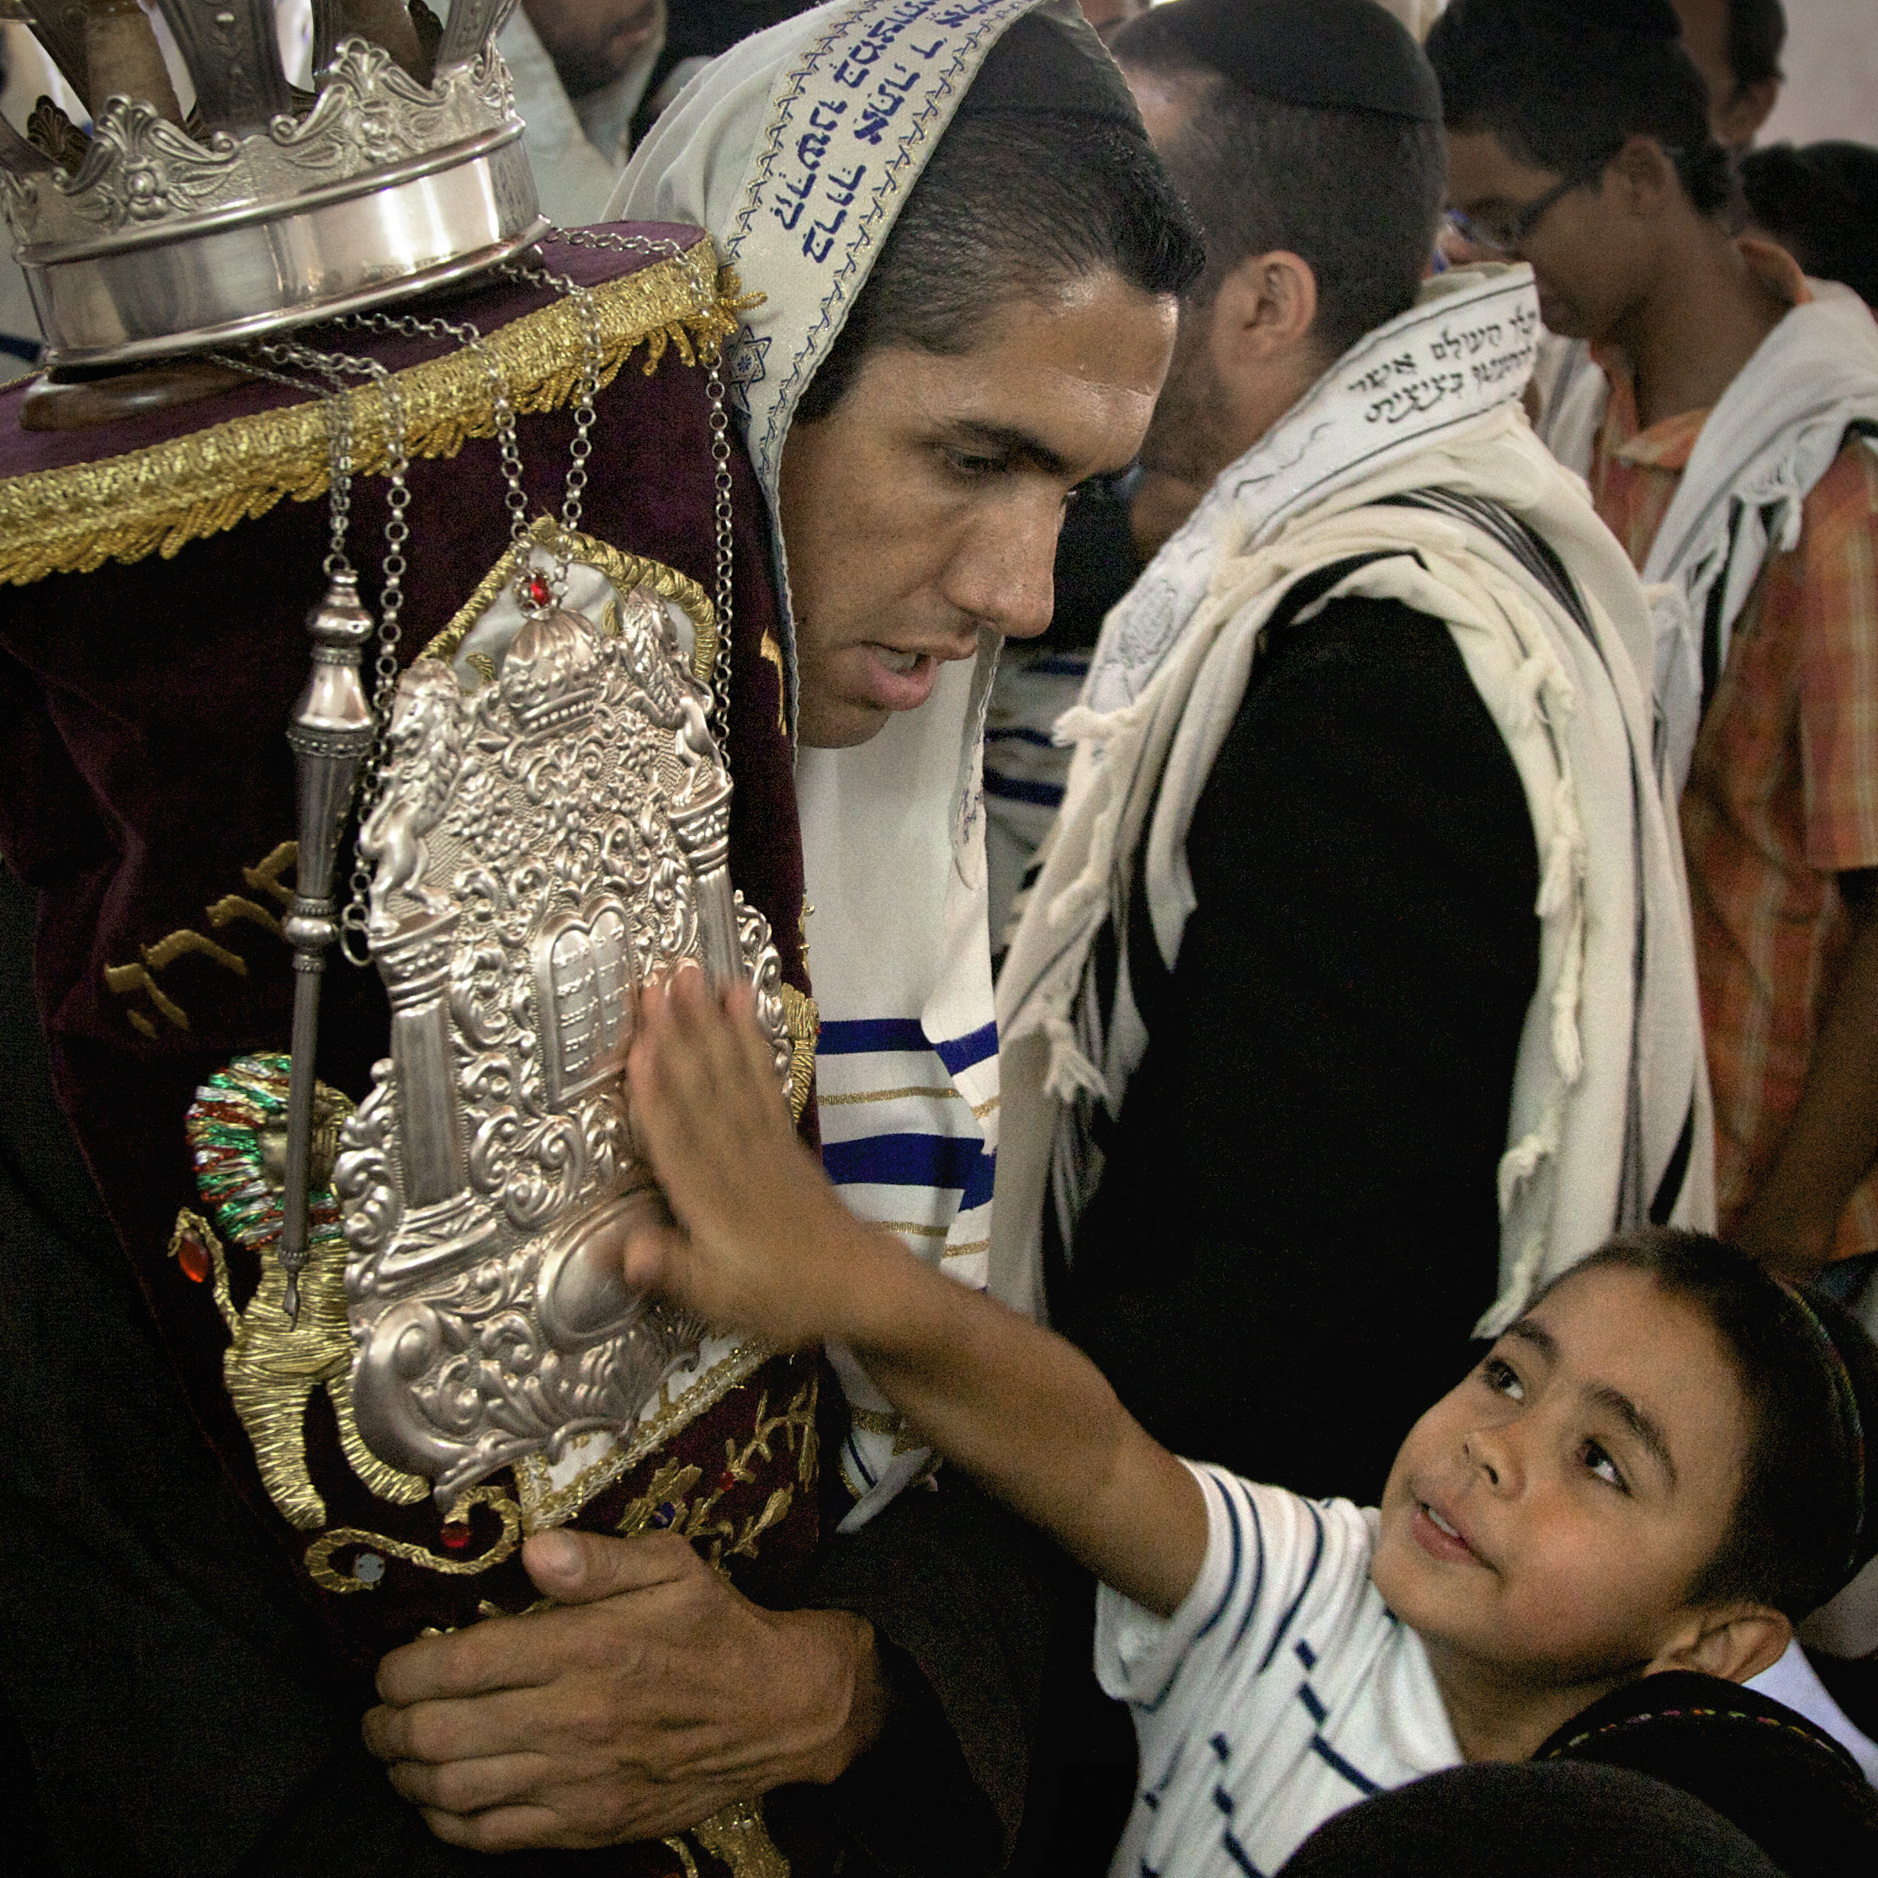 Many members of the Jewish community in Bello, Colombia, were raised as Christians. They believe their ancestors were Jews who fled the Spanish Inquisition, and so they are now Orthodox Jews. Here, a boy reaches out to the 120-year-old Torah that was written in Amsterdam and acquired by the community five years ago.